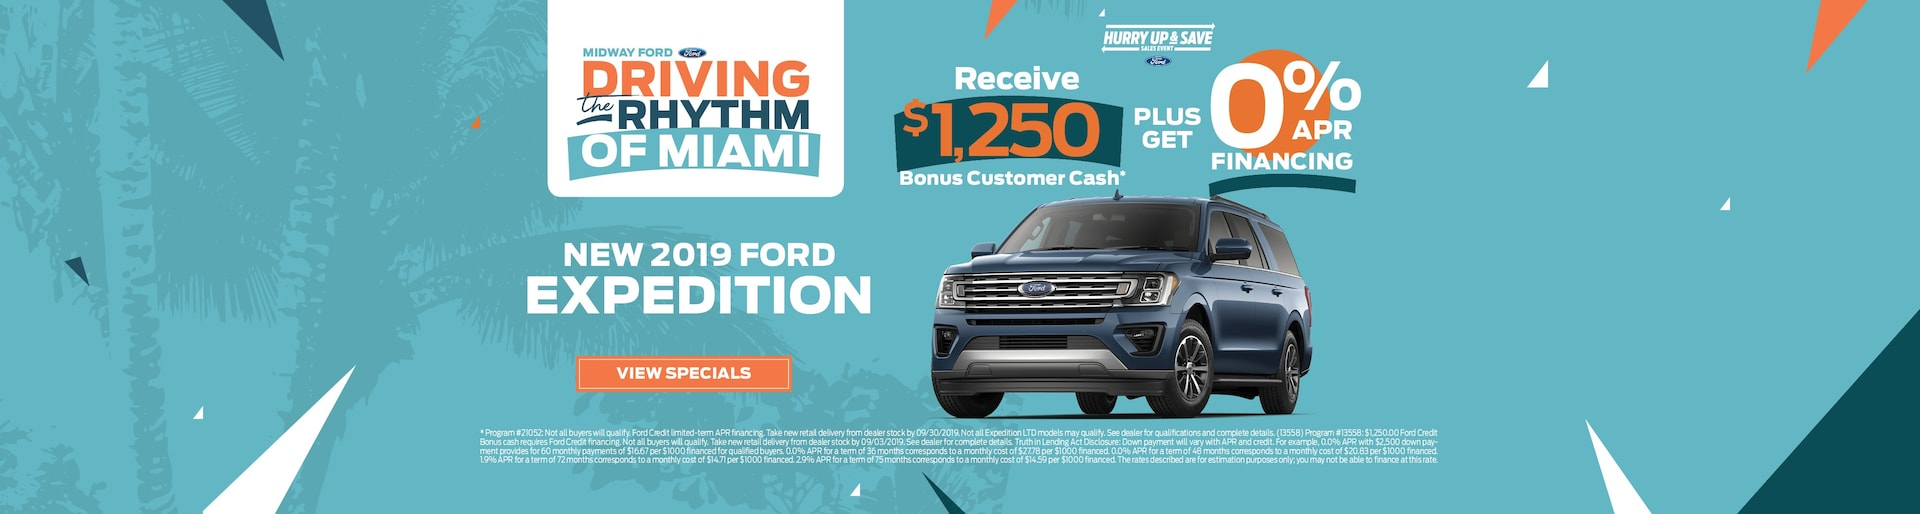 Ford Dealer Miami >> Midway Ford Ford Dealership In Miami Fl